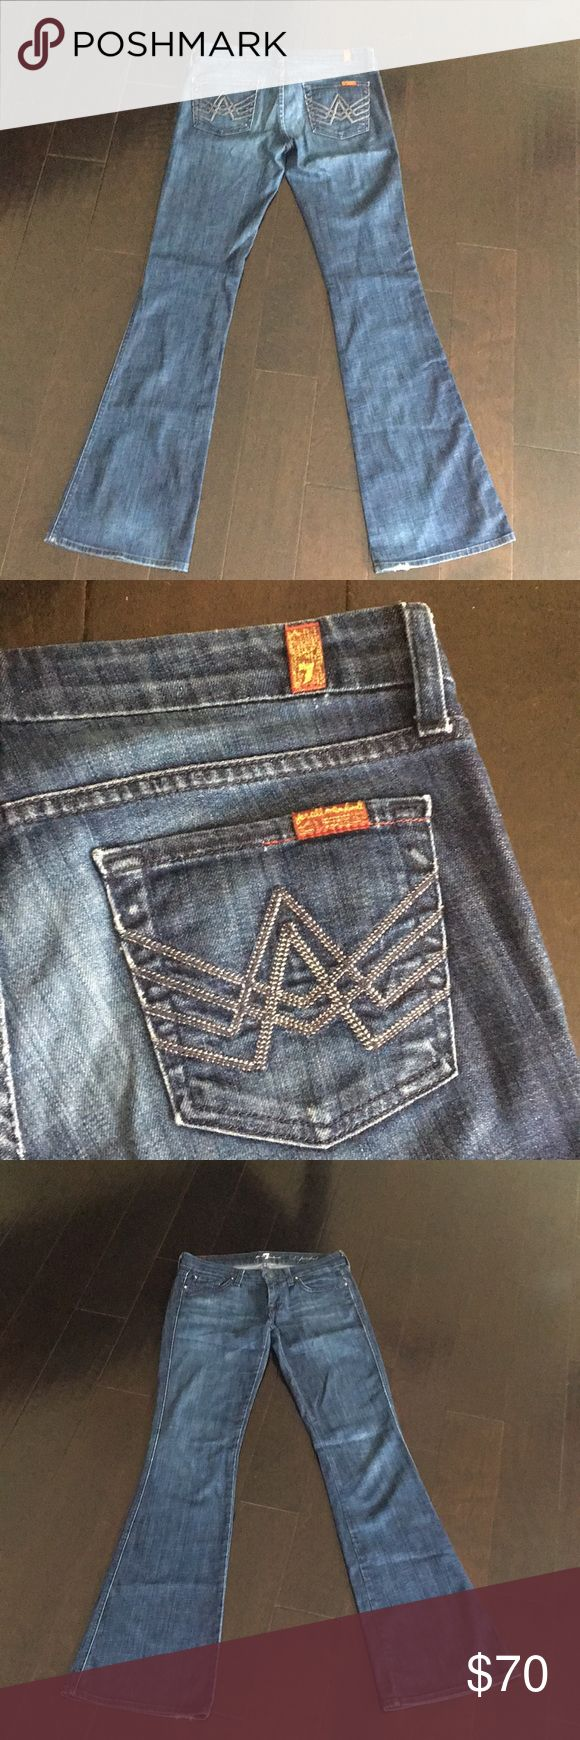 Seven Jeans Seven for all man kind A pocket, boot cut, low rise, excellent condition. Seven7 Jeans Boot Cut